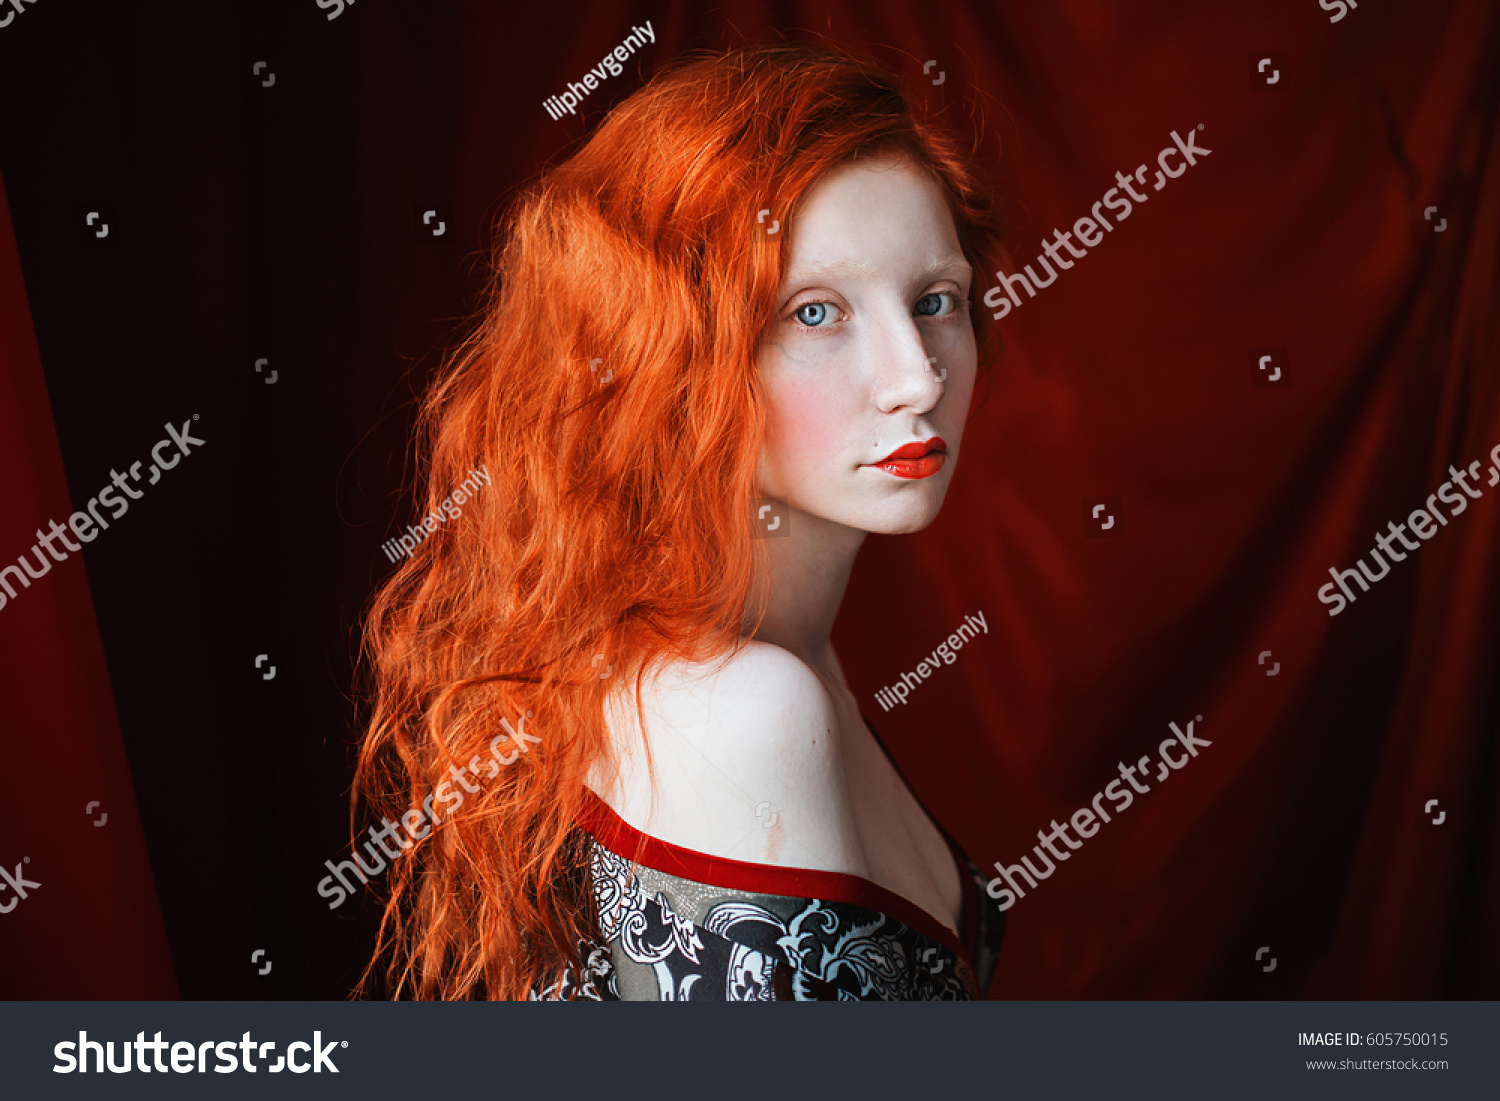 Woman Her Red Curly Hair Bathrobe Stock Photo Edit Now 605750015